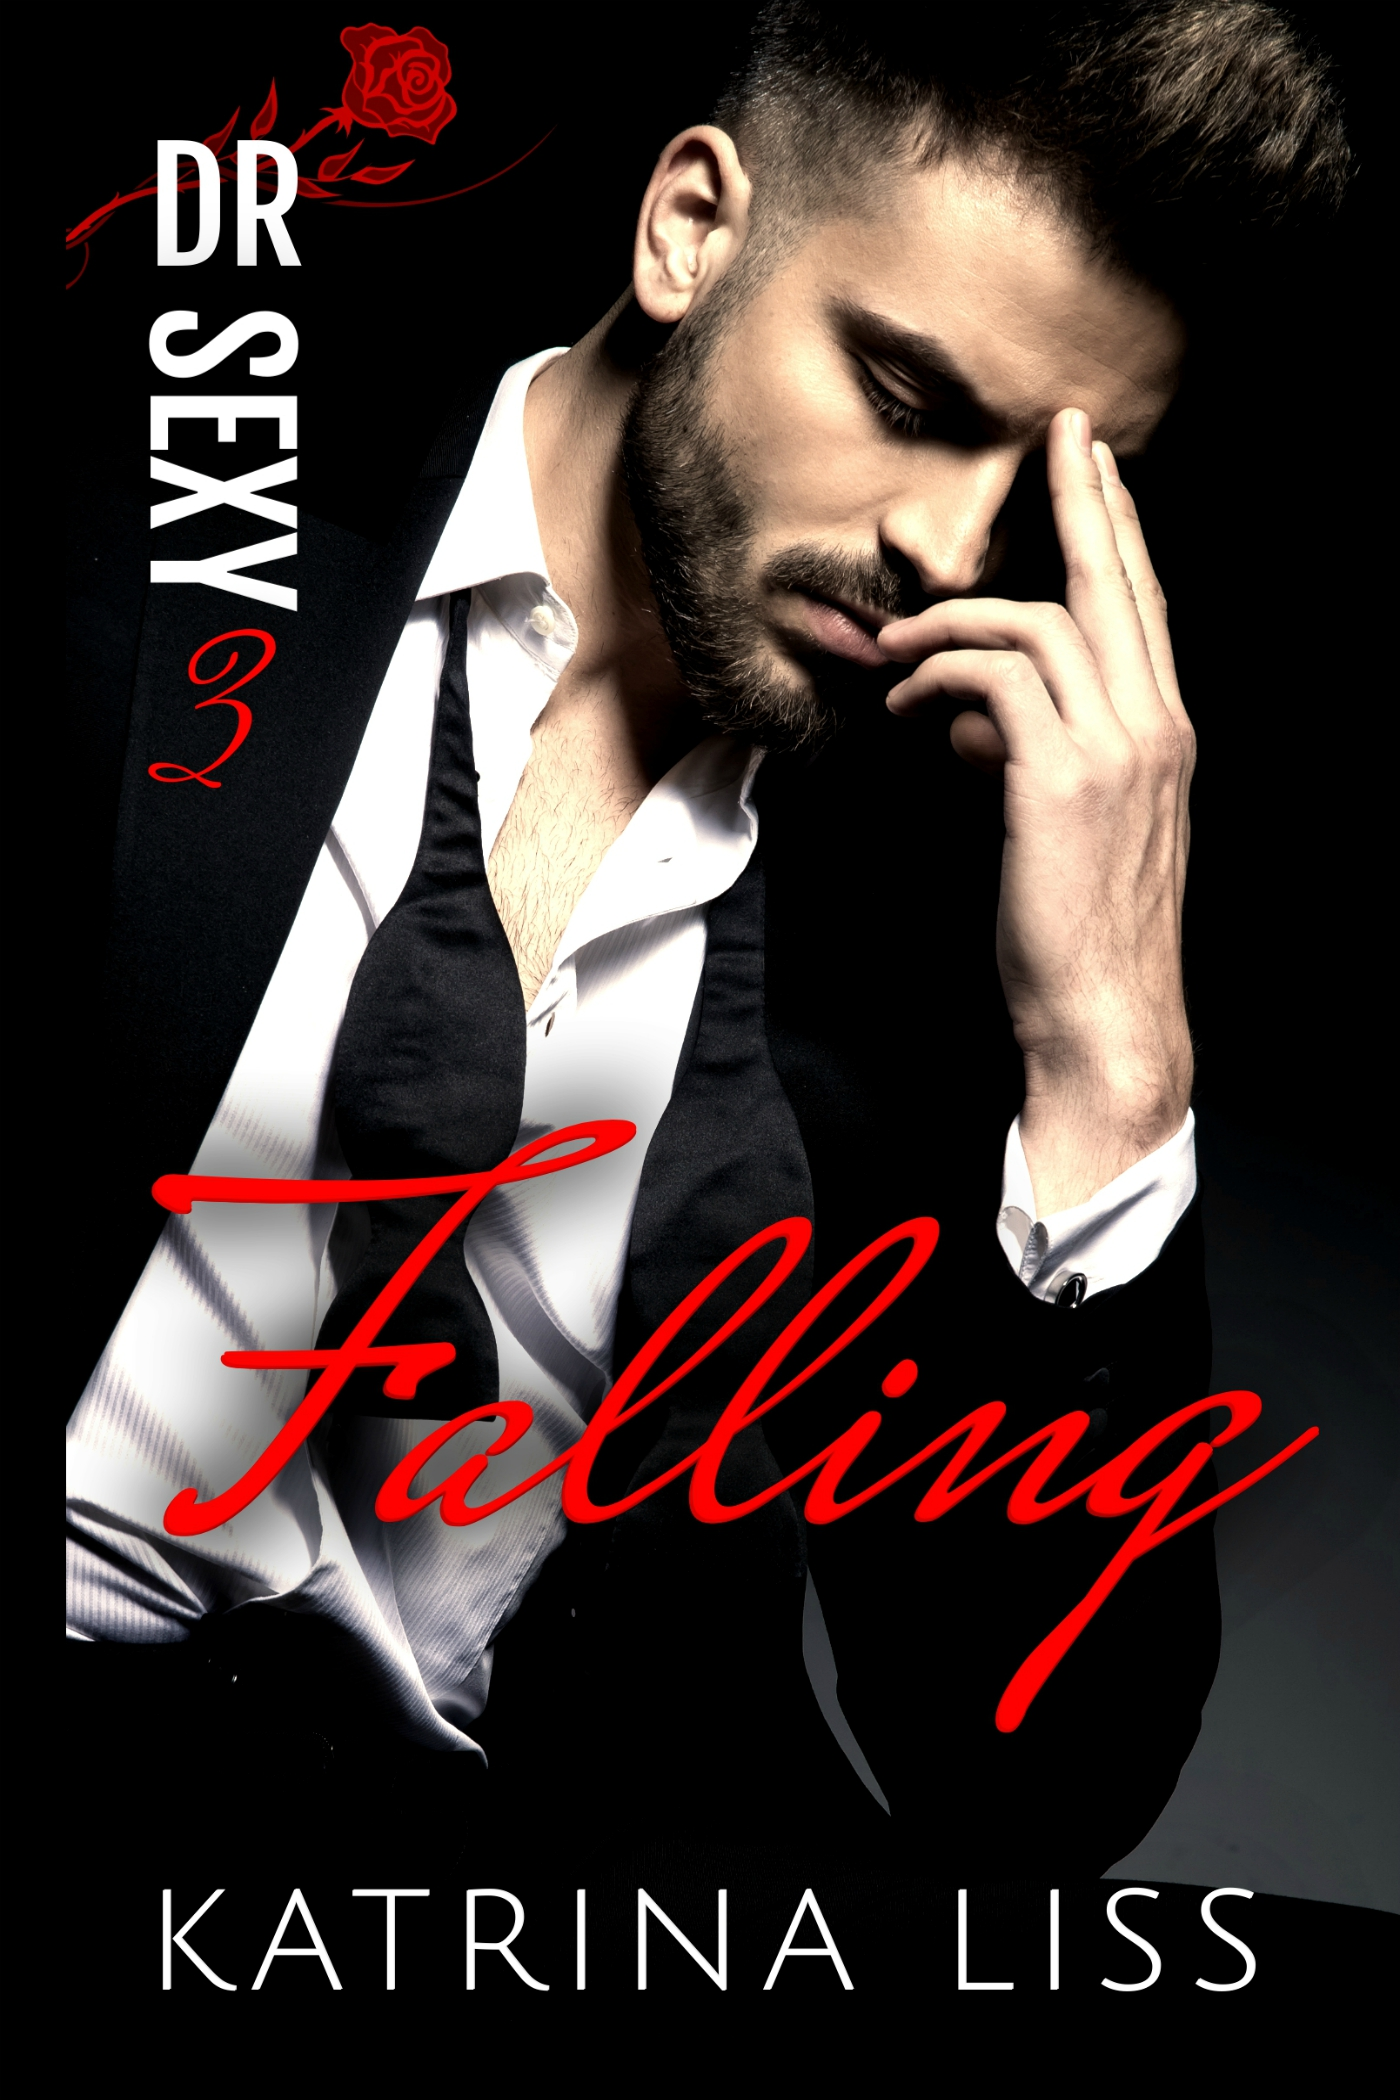 dr sexy falling ebook